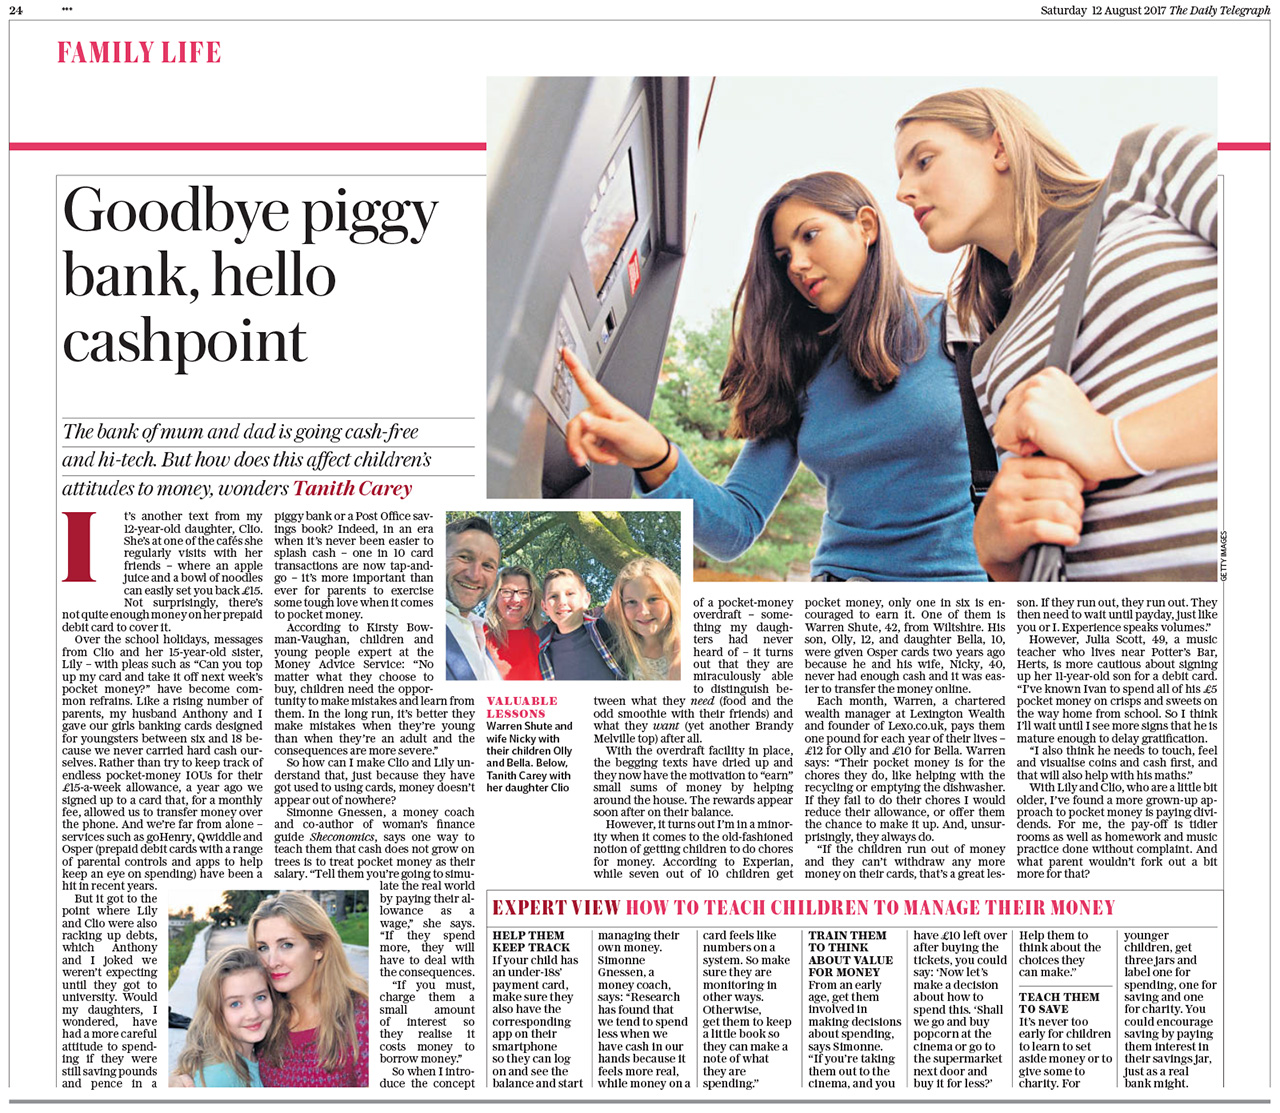 F_P Daily Telegraph August 12th 2017.jpg